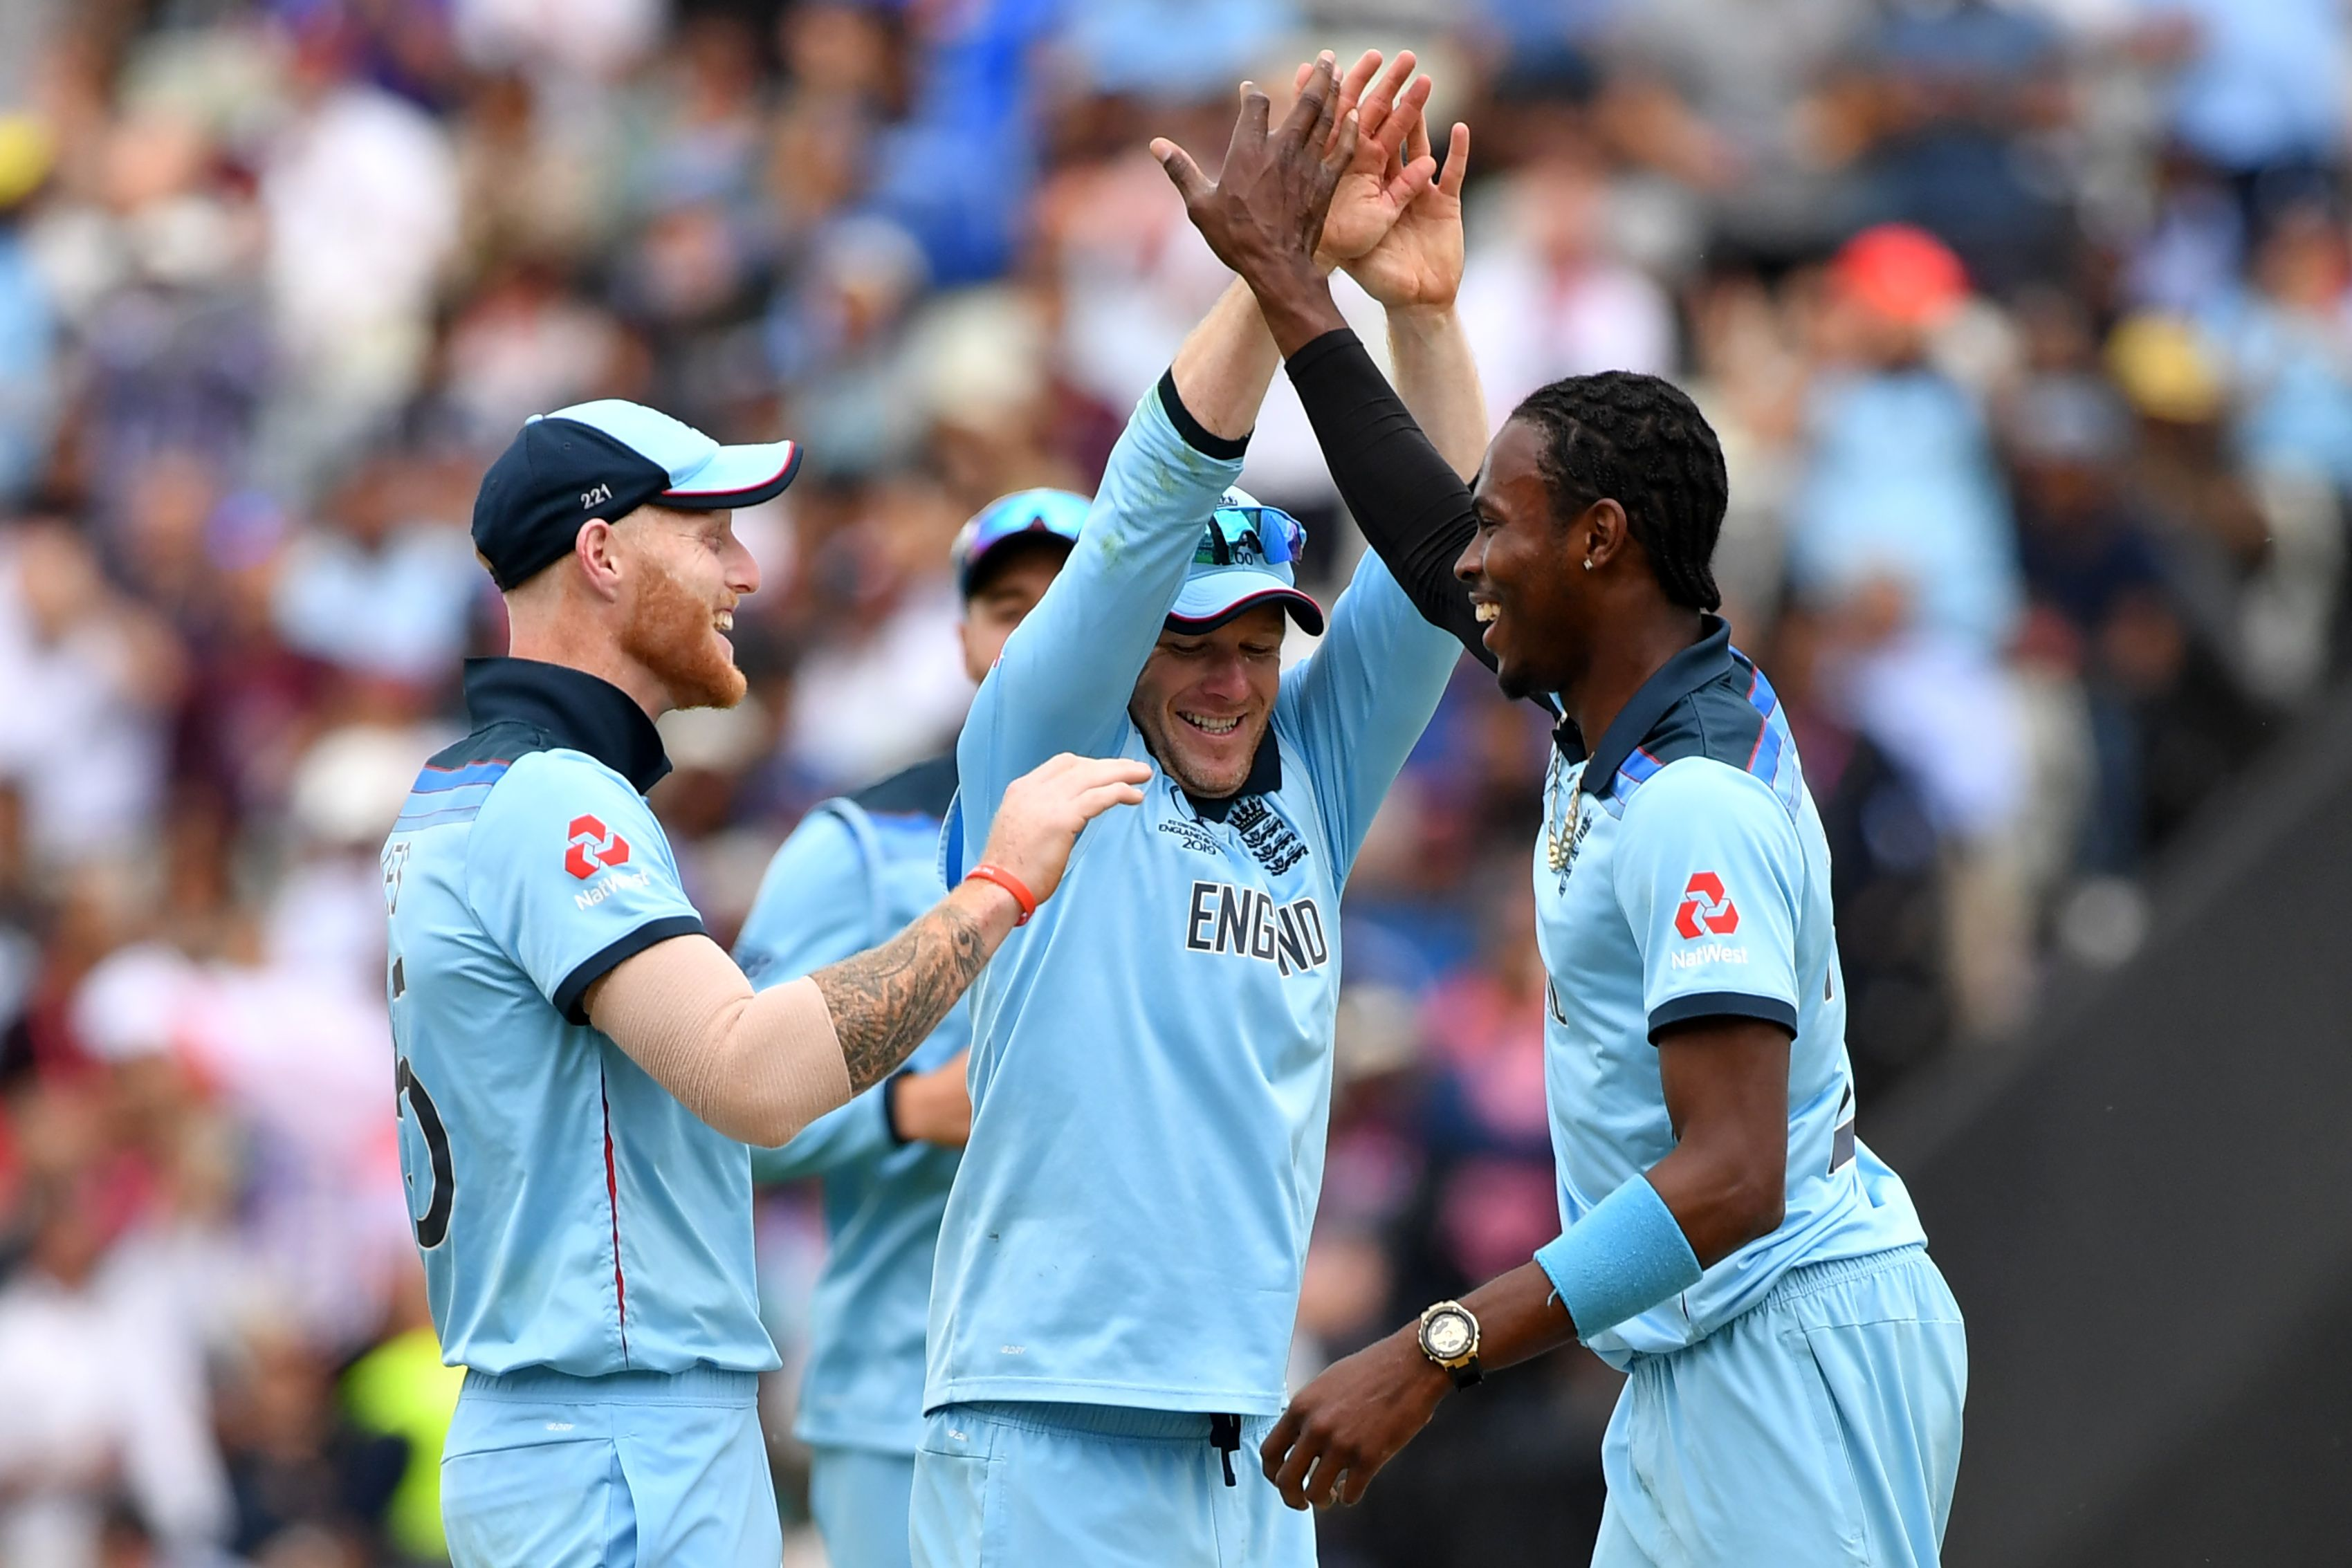 Ben Stokes (L), captain Eoin Morgan (C) and Jofra Archer (R) celebrate the wicket of Glenn Maxwell. Photo: AFP